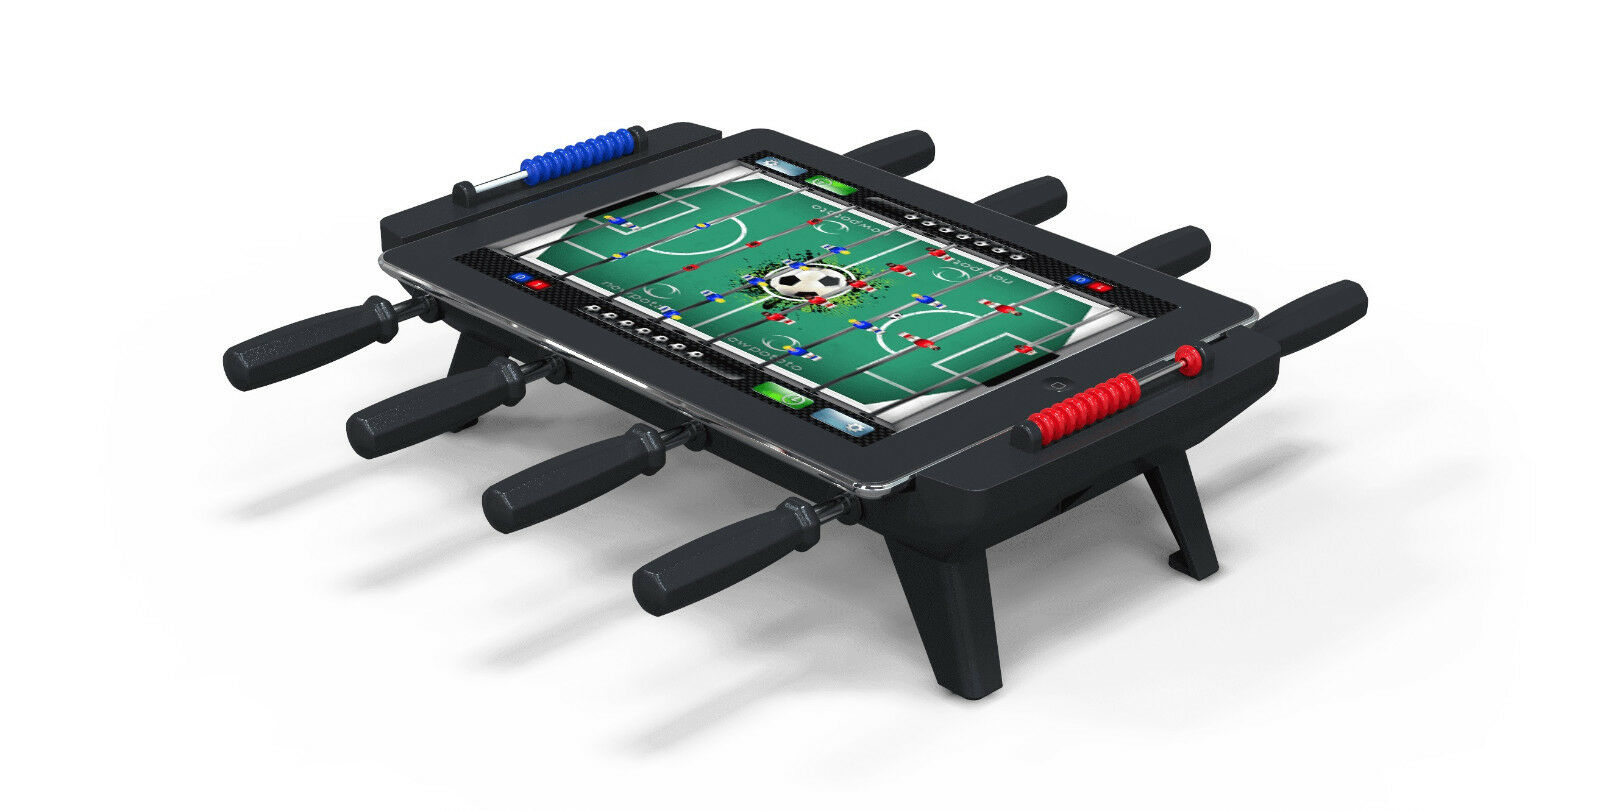 match 3 computer games - New Potato Classic Match Foosball Game Table for iPad 1, 2, 3